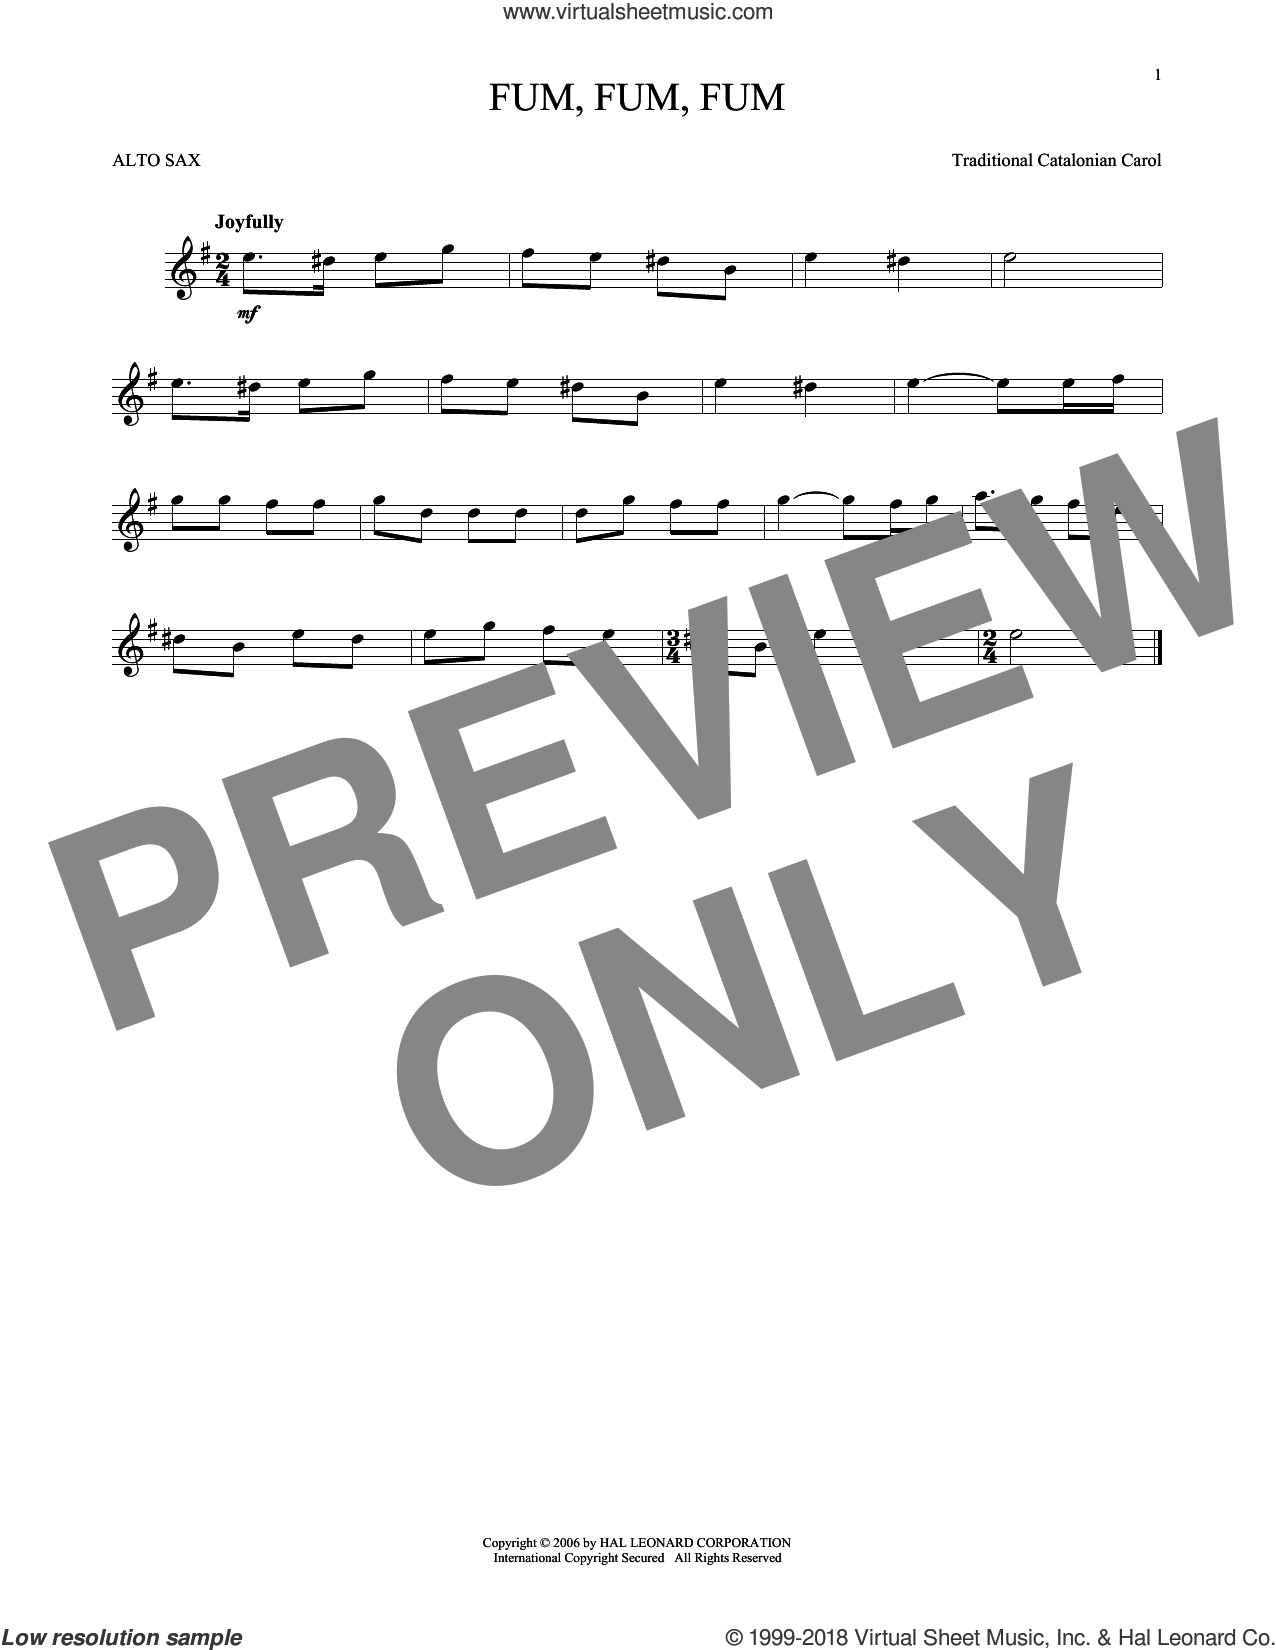 Fum, Fum, Fum sheet music for alto saxophone solo. Score Image Preview.